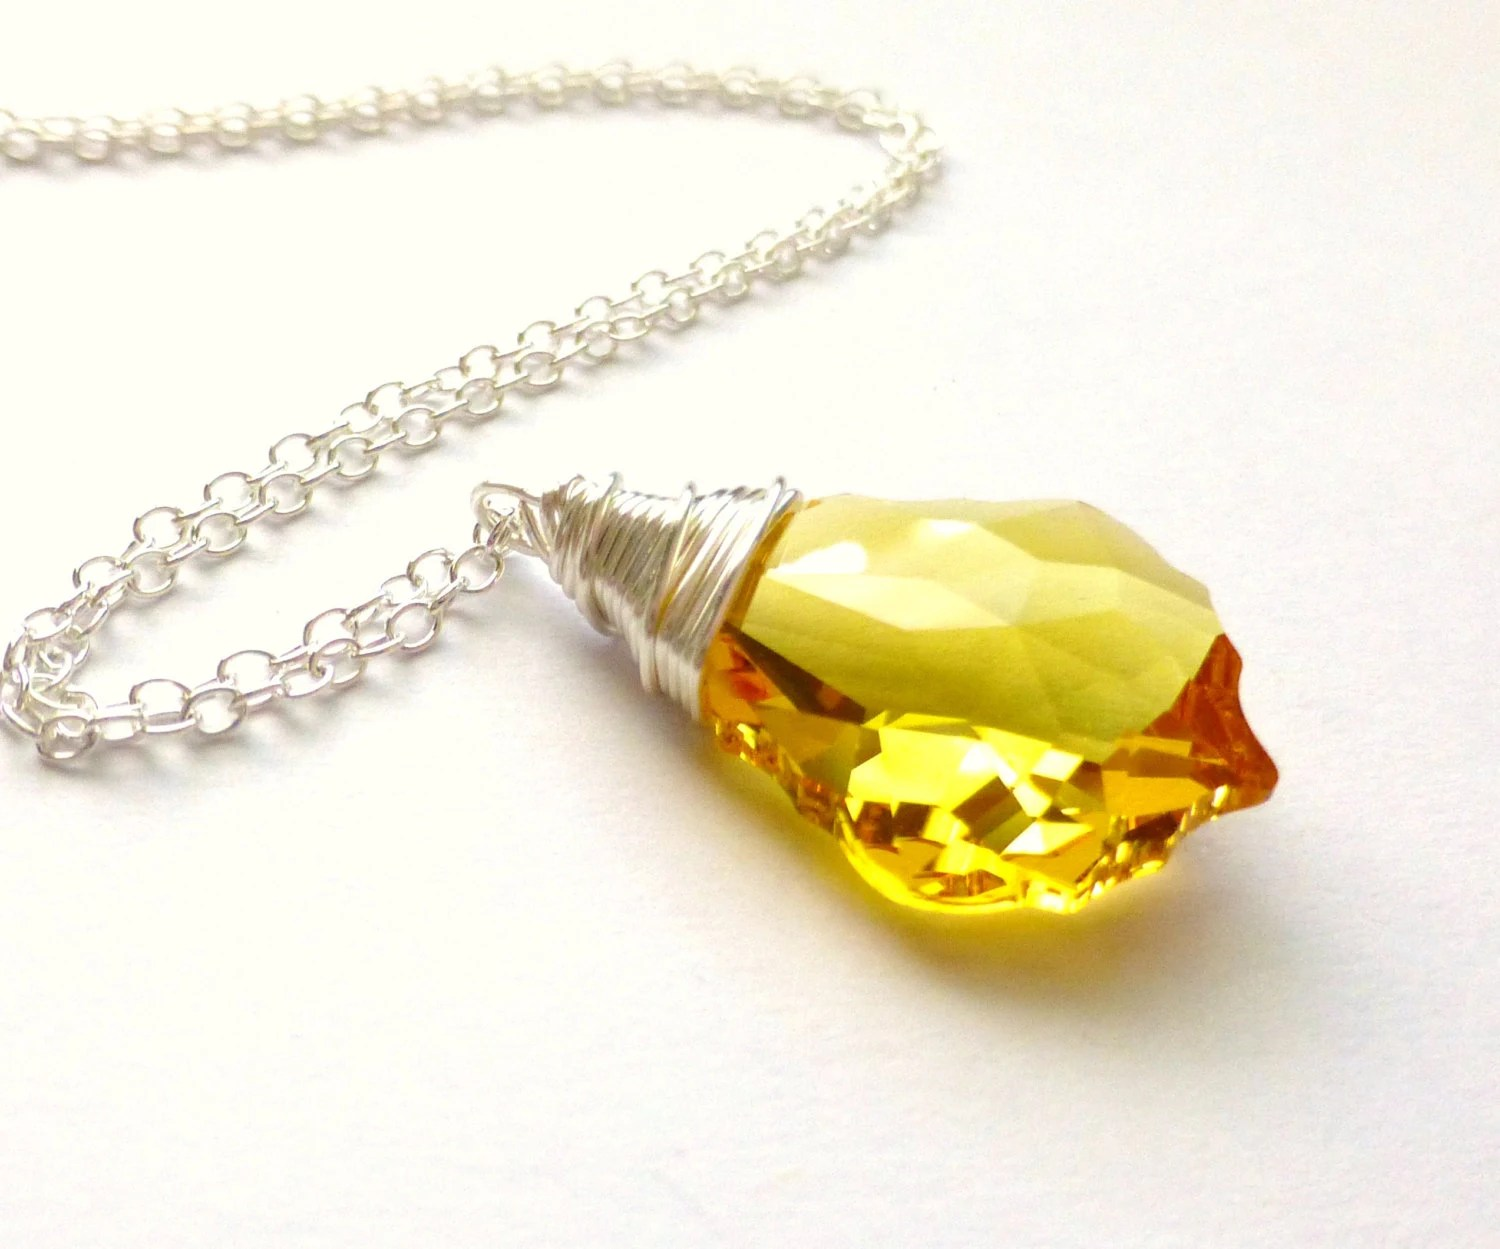 Yellow Crystal Necklace, Light Topaz Swarovski Baroque Pendant, Wire Wrapped, Sterling Silver Necklace, JBMDesigns - JBMDesigns